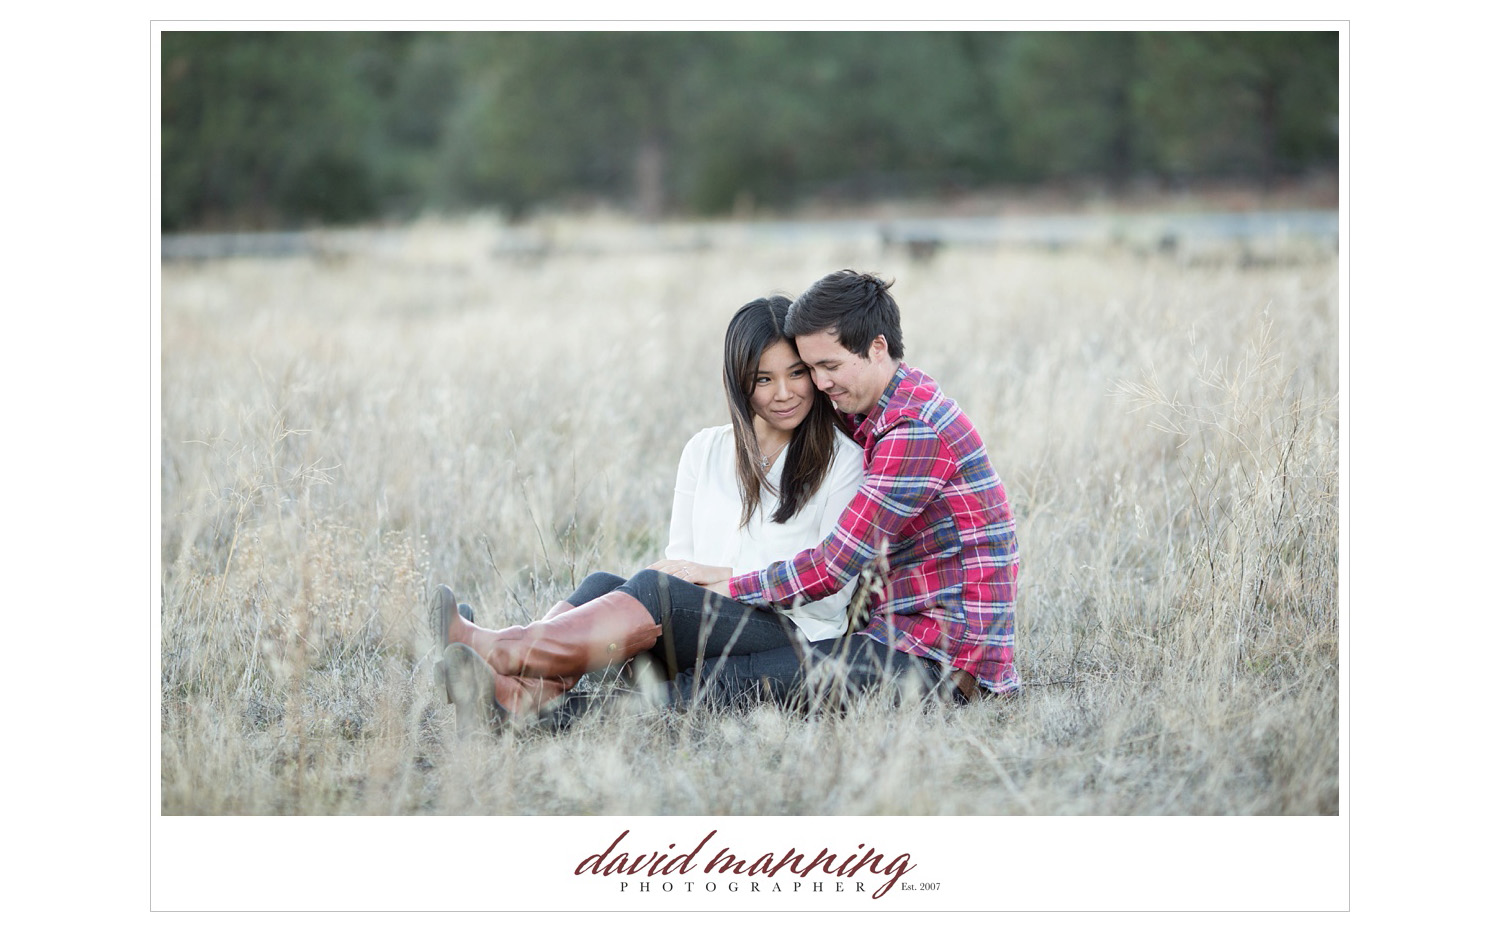 Del-Mar-Ramona-Julian-Engagement-Photos-David-Manning-Photographers-0014.jpg